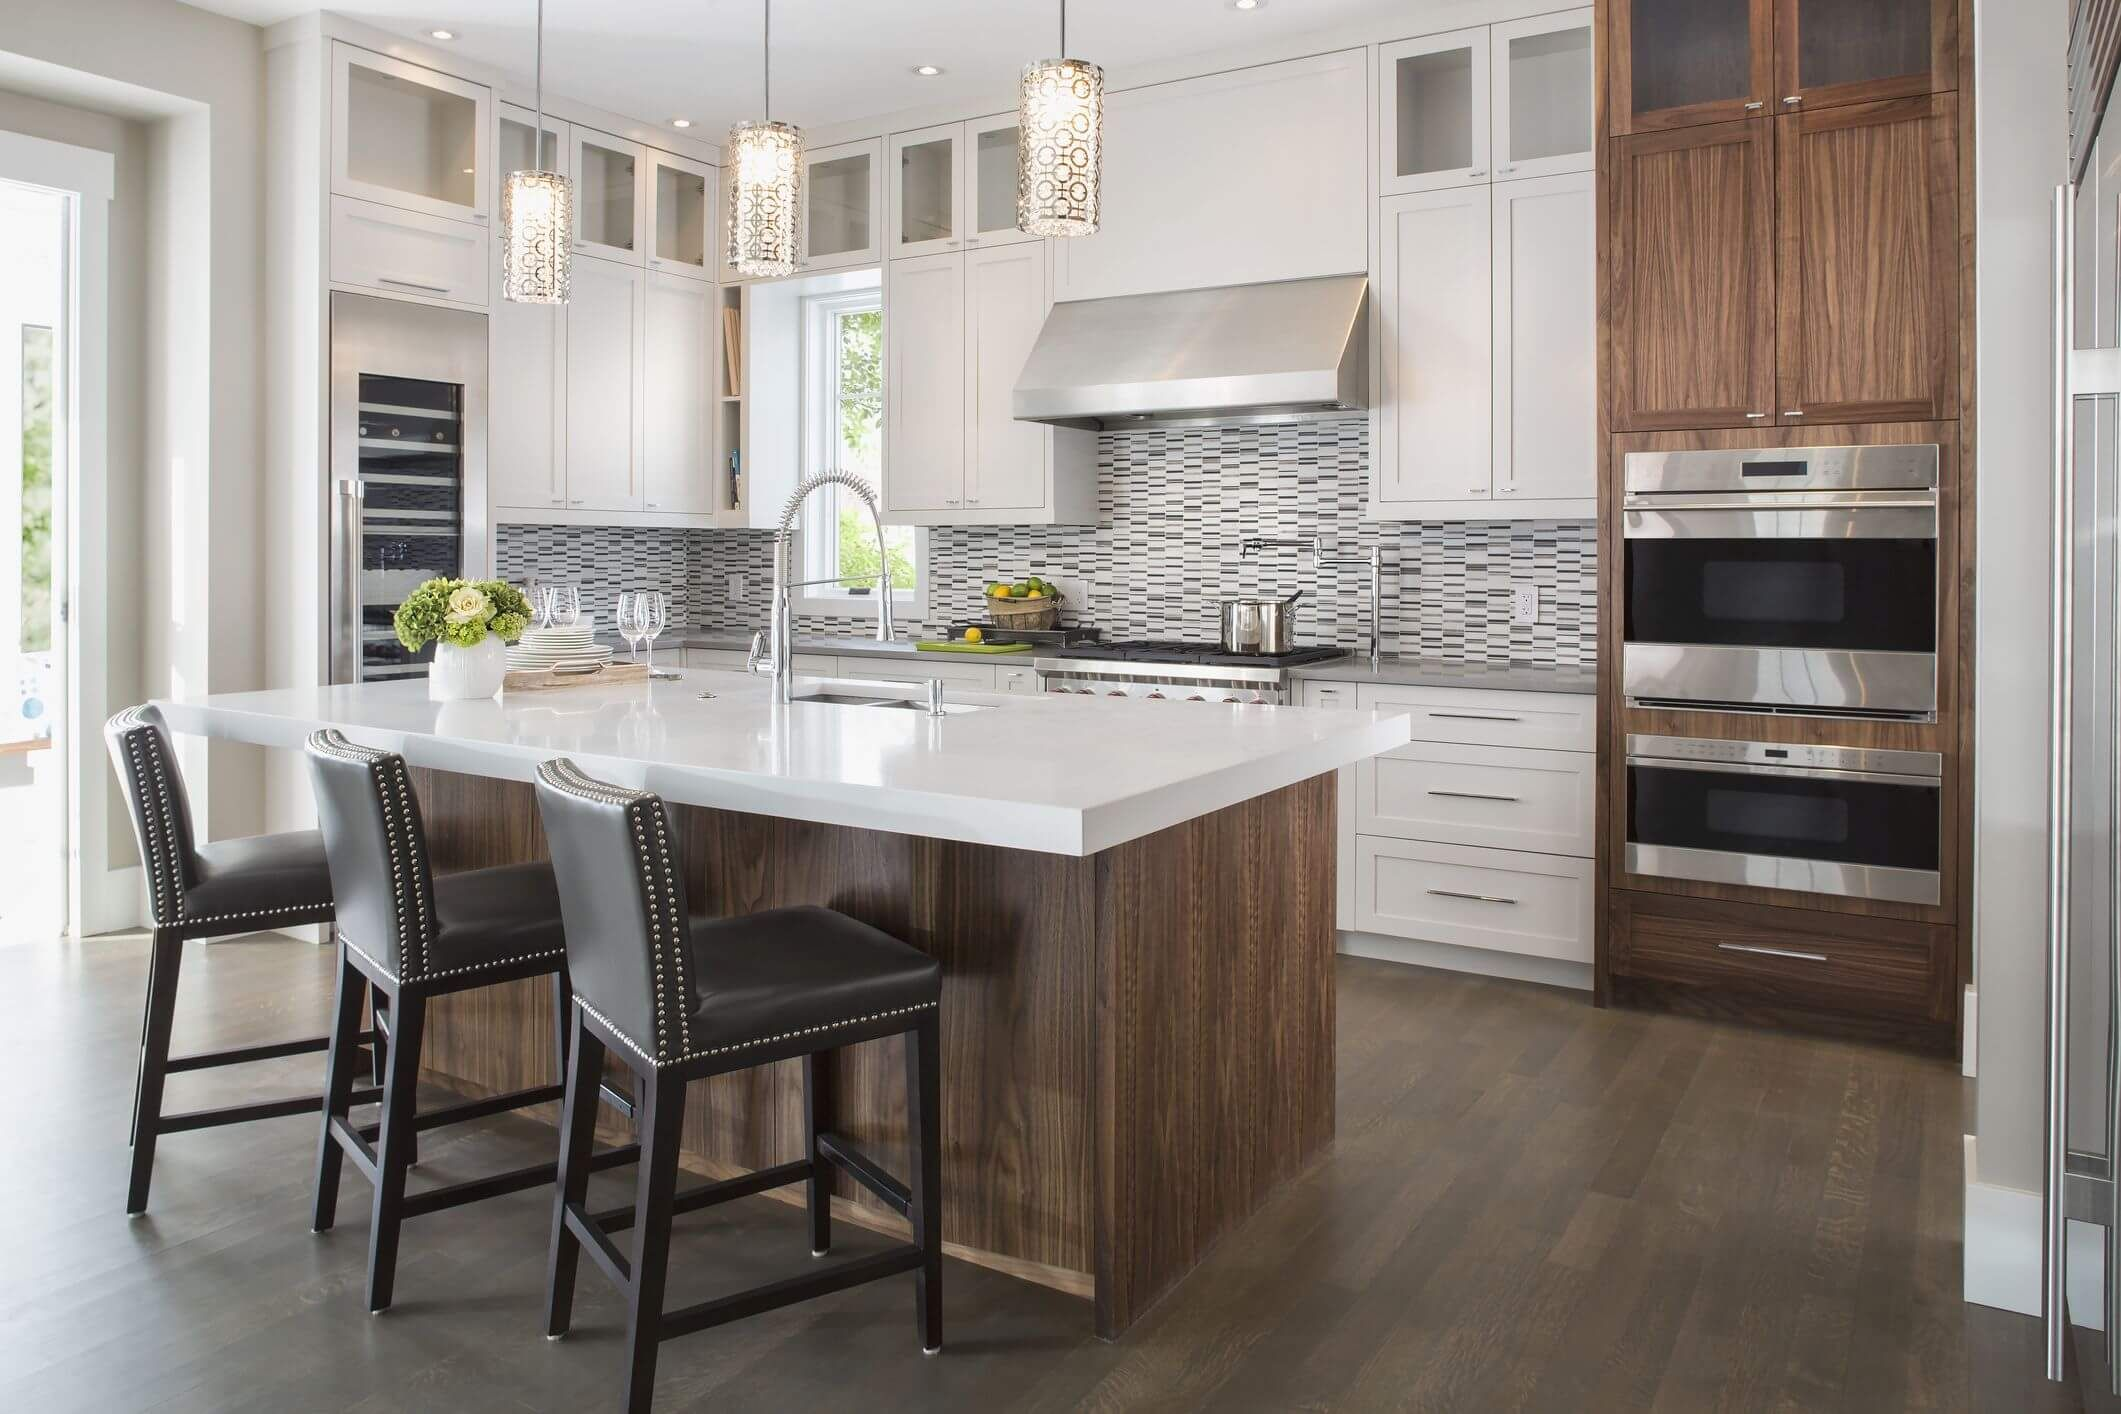 Engineered wood can be used on the floors and cabinets.